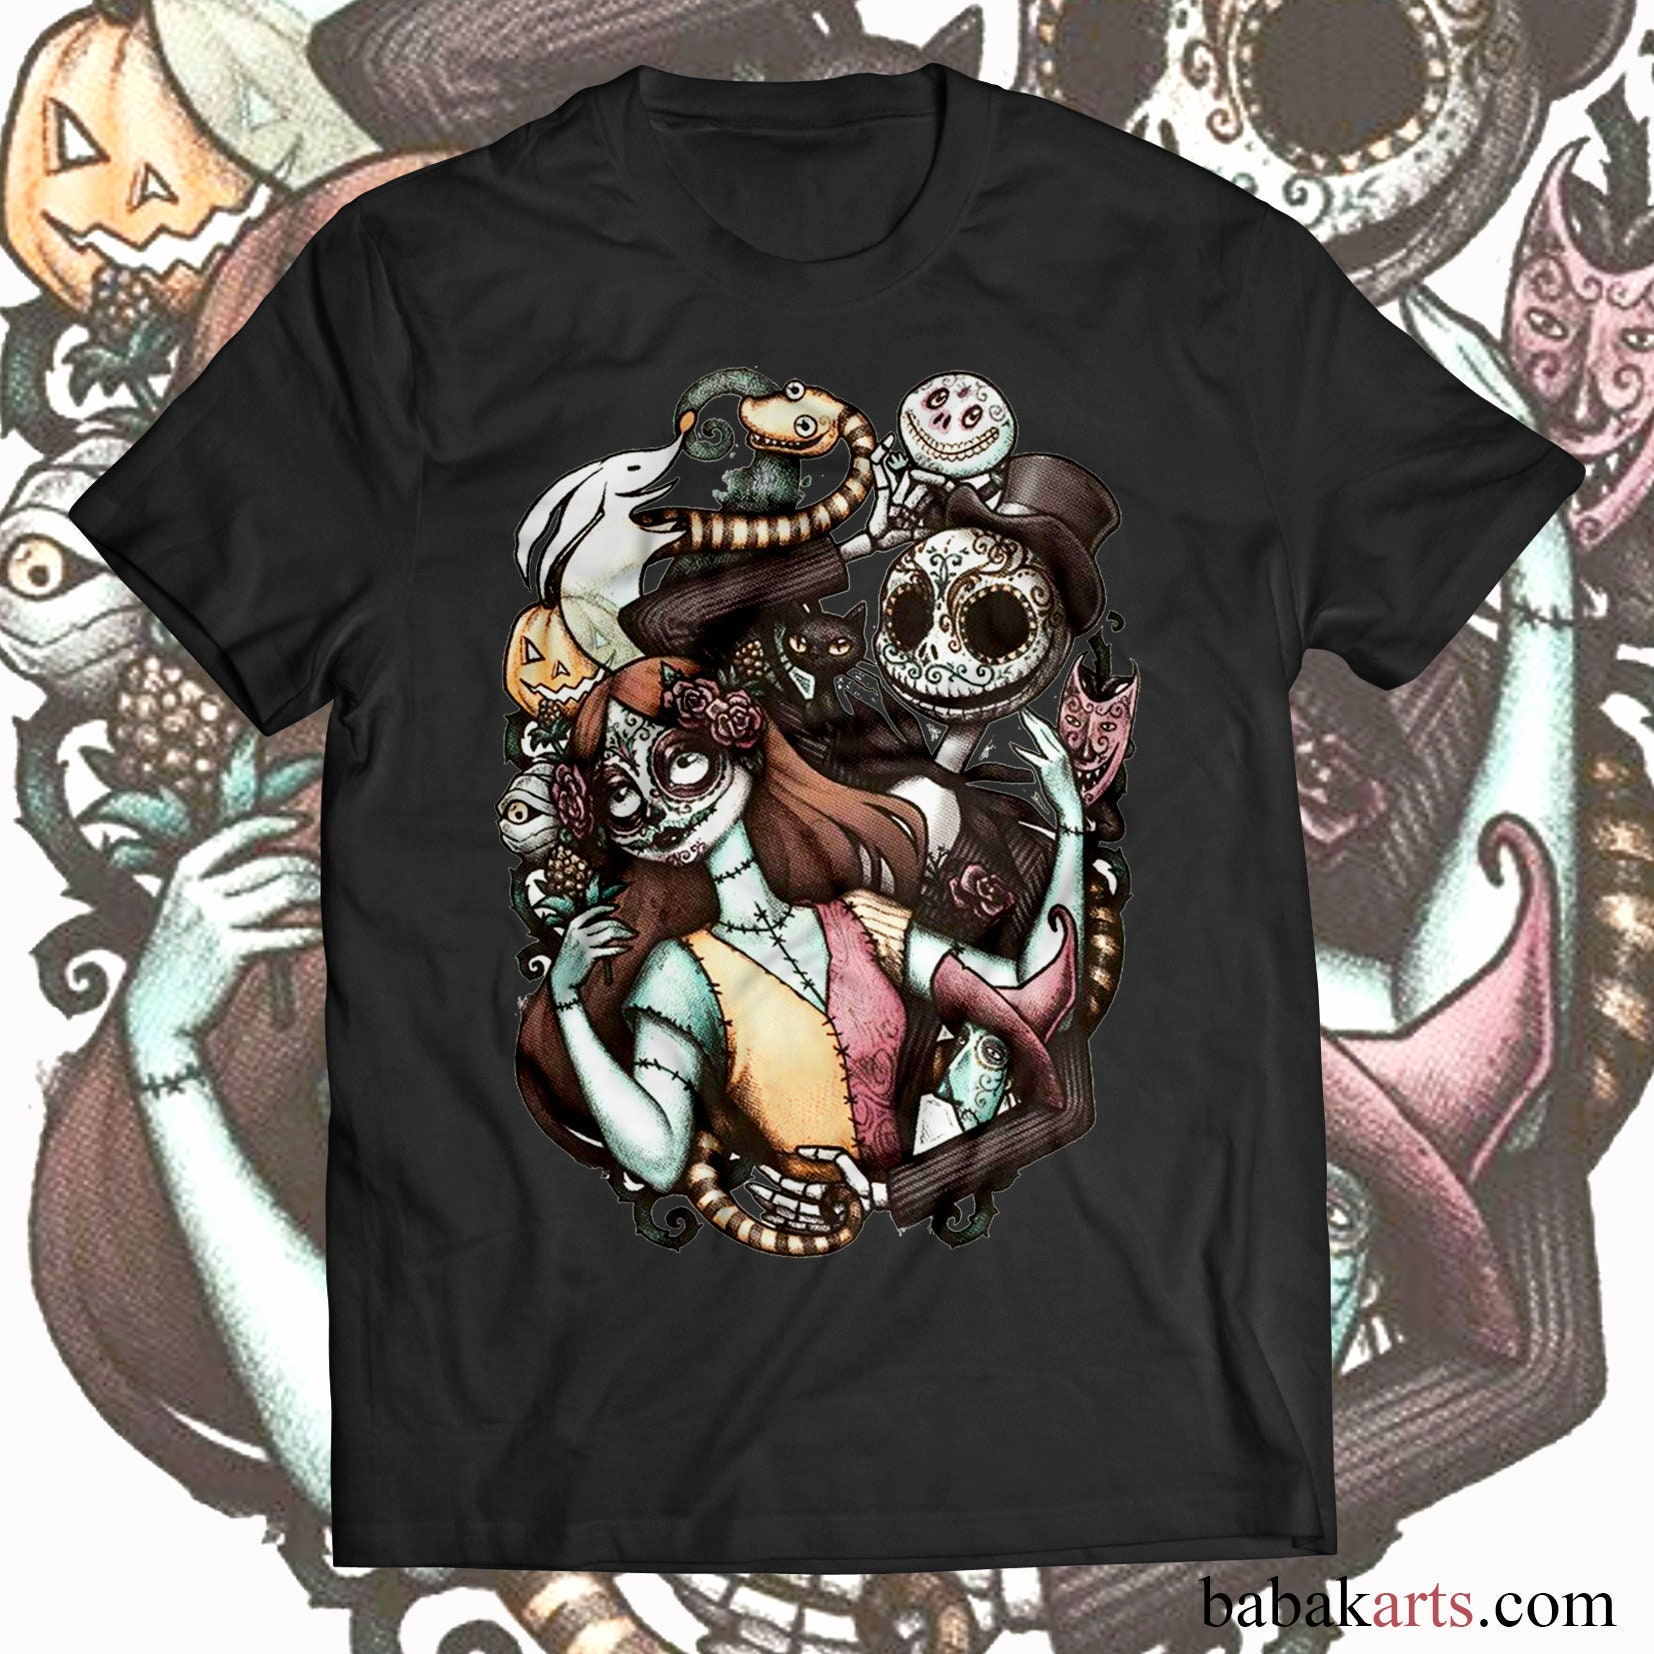 Halloween T-Shirt - Nightmare before Christmas - Jack Skellington ...